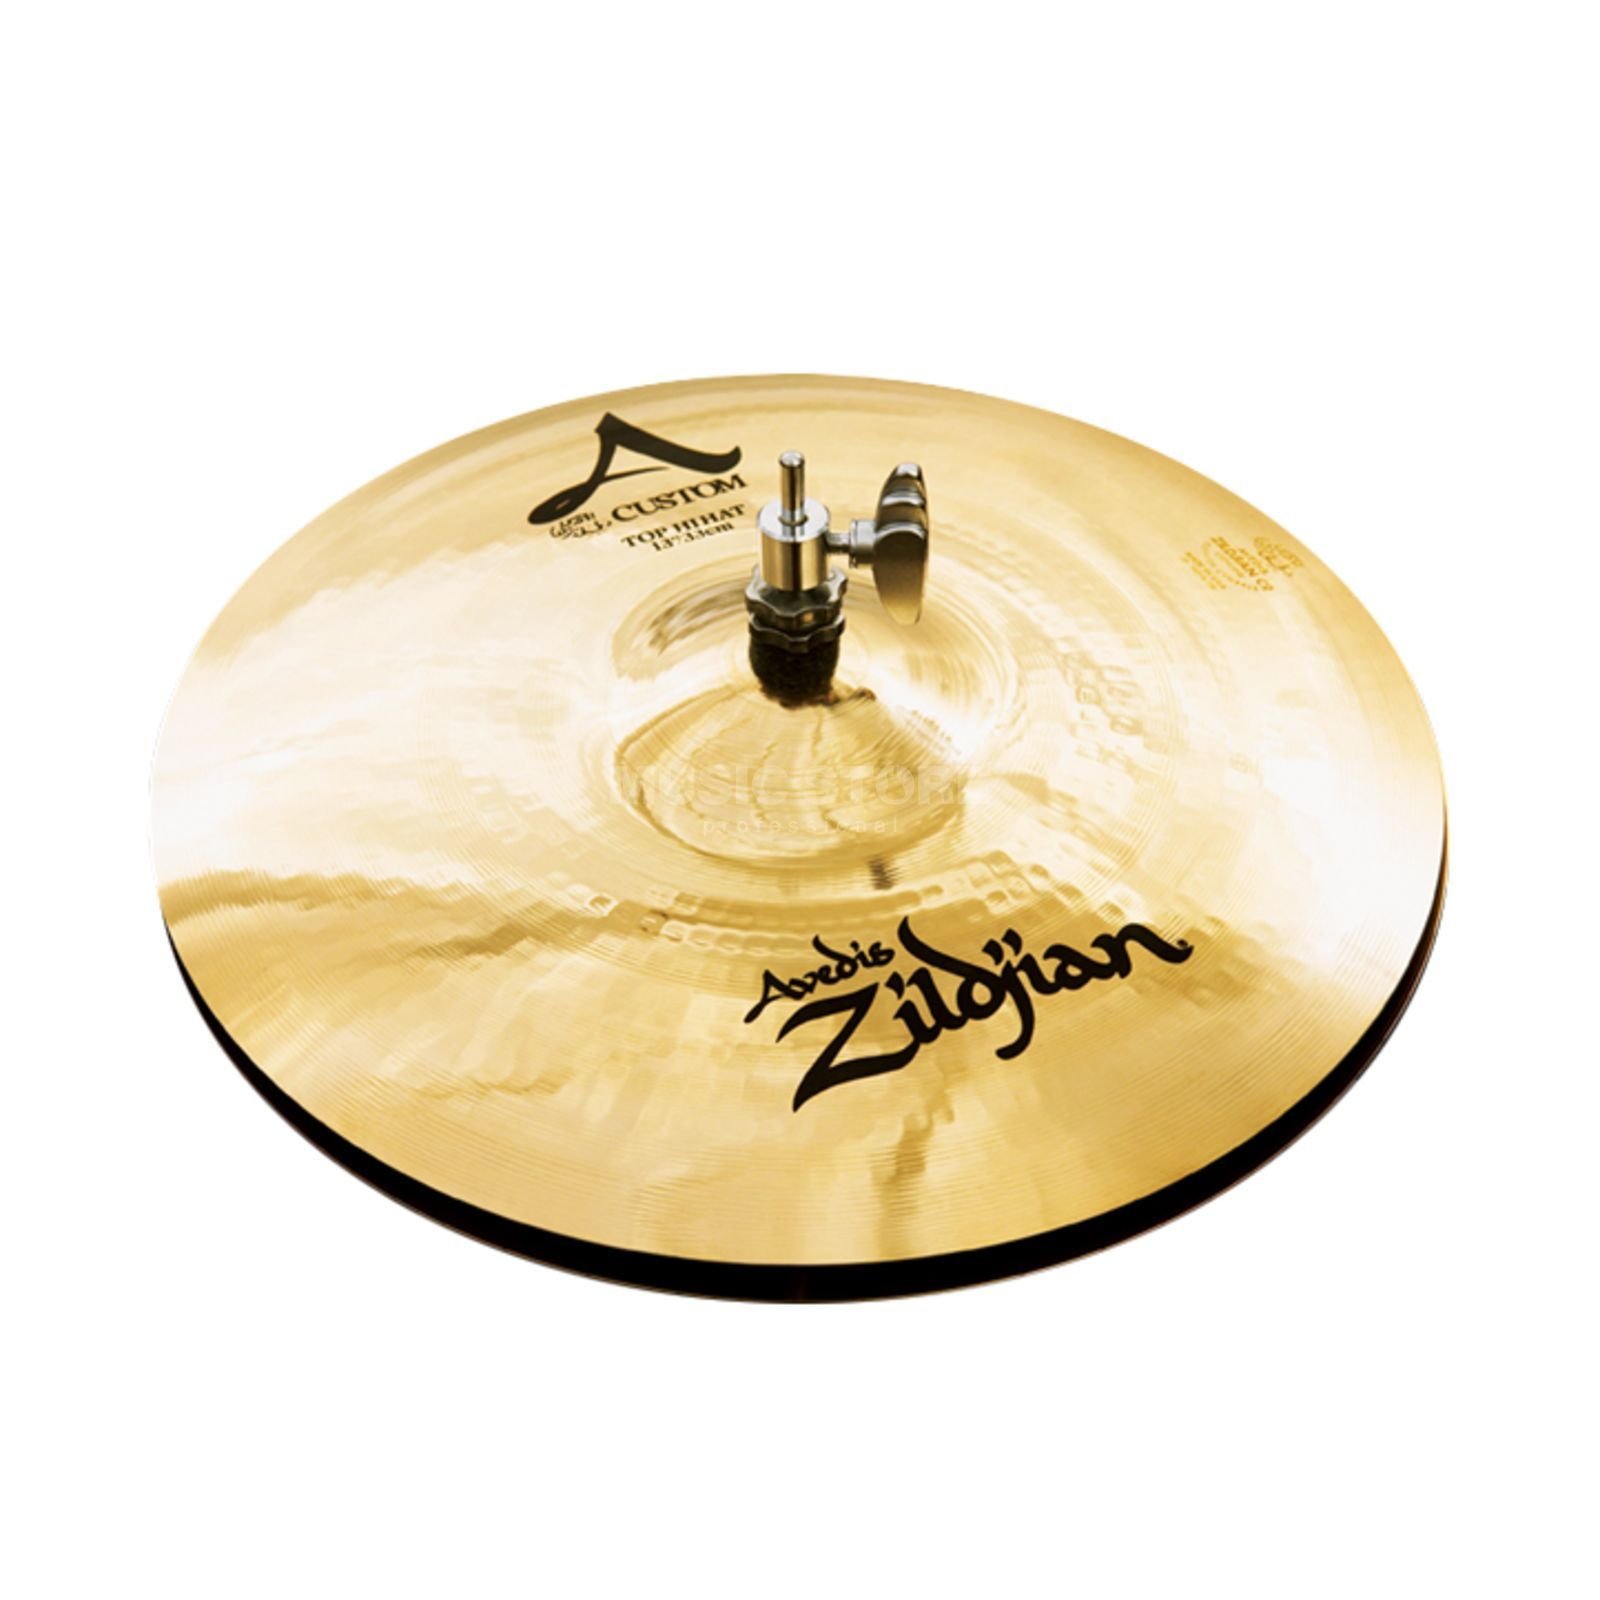 "Zildjian A-Custom HiHat 13"" Brilliant Finish Produktbild"